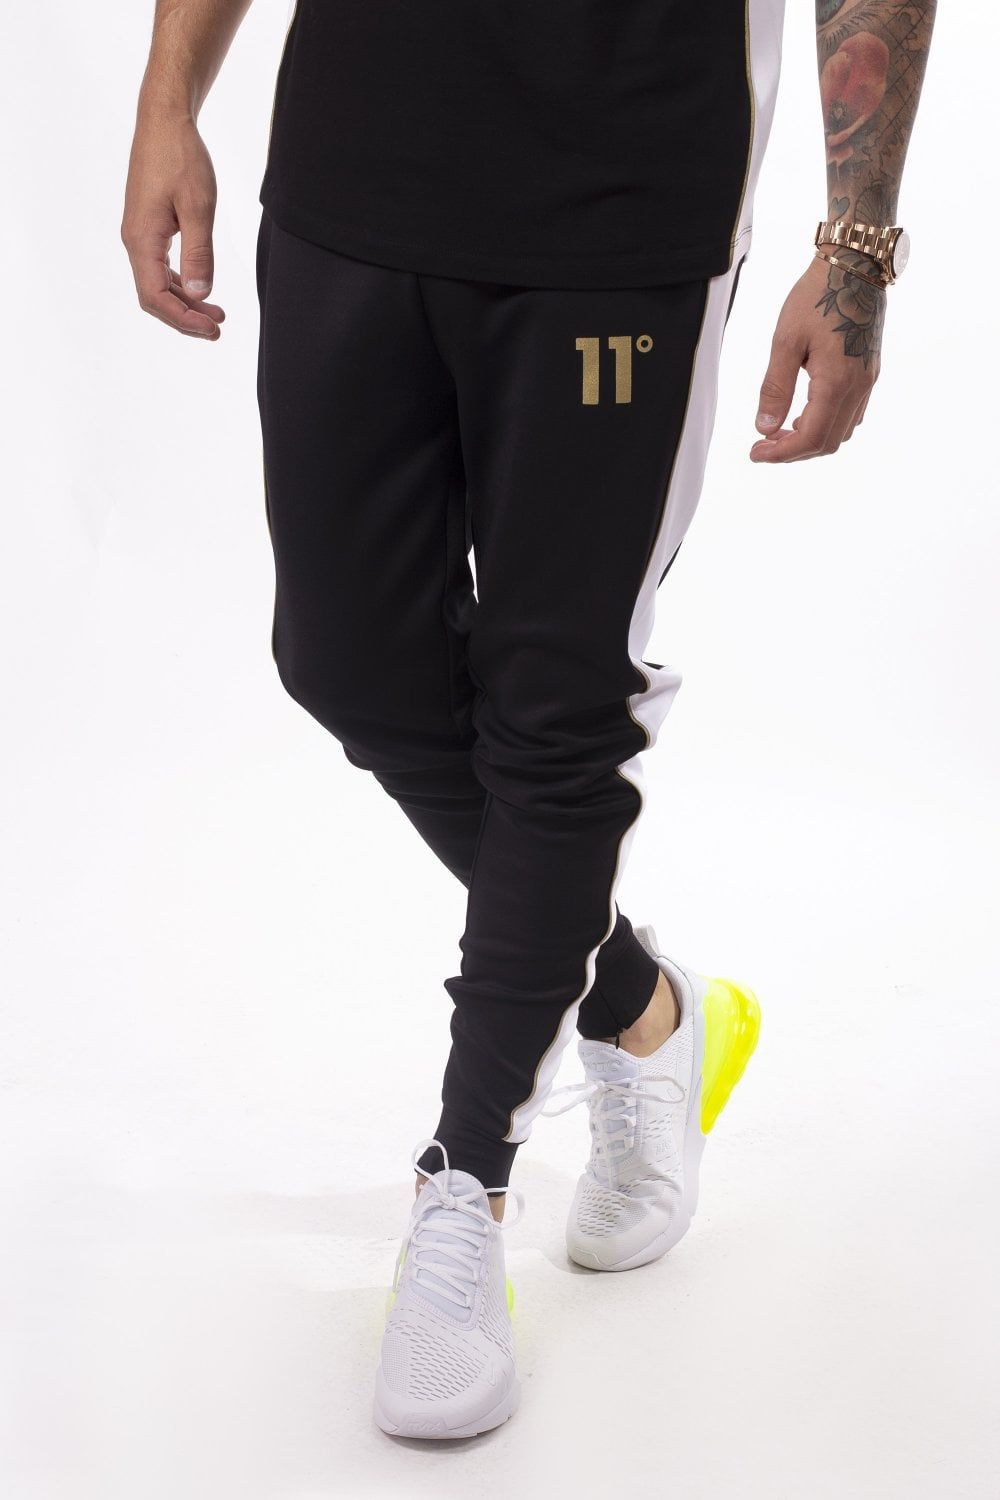 Panelled Poly Track Pants Black White Gold Black White Gold Black Black White